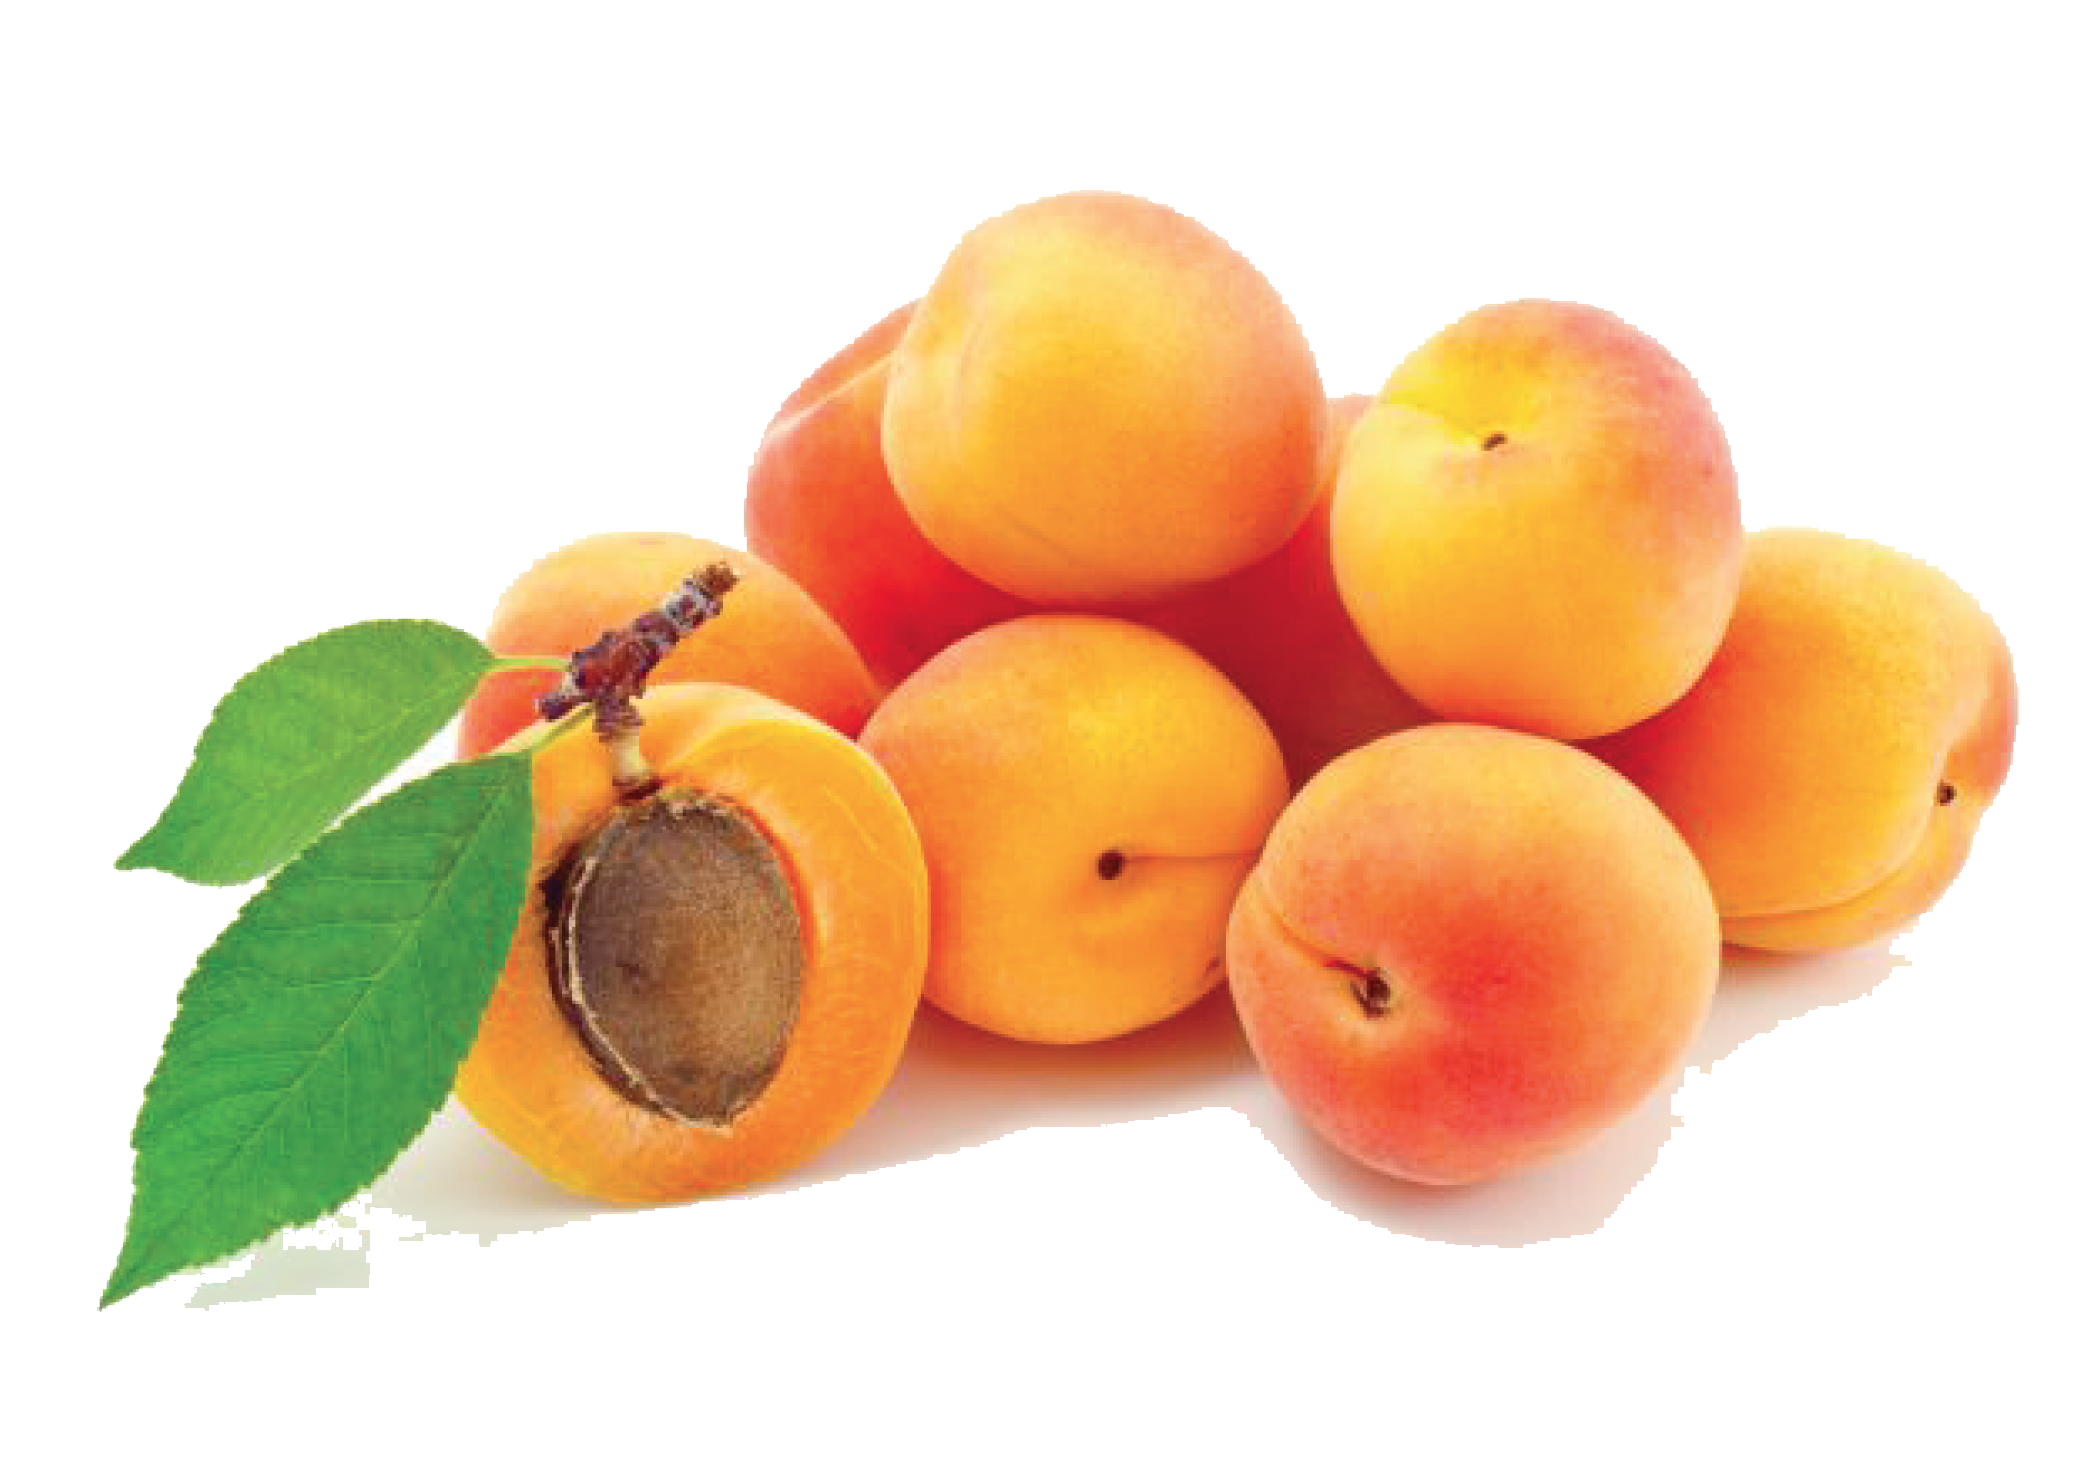 Apricot PNG - 17388